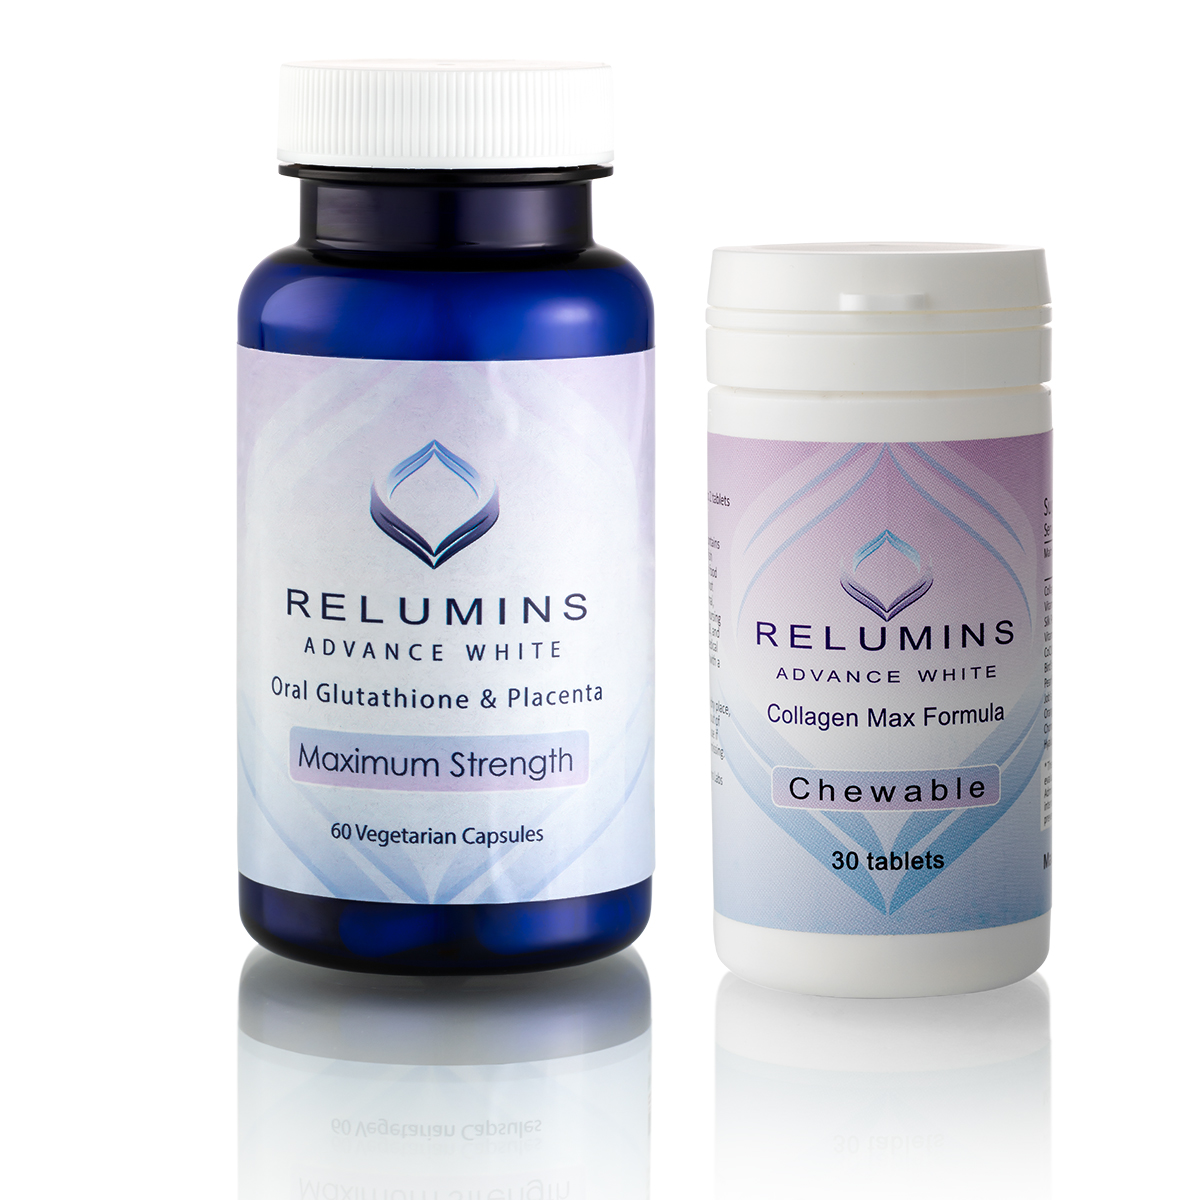 Collagen / Anti-Aging Supplements